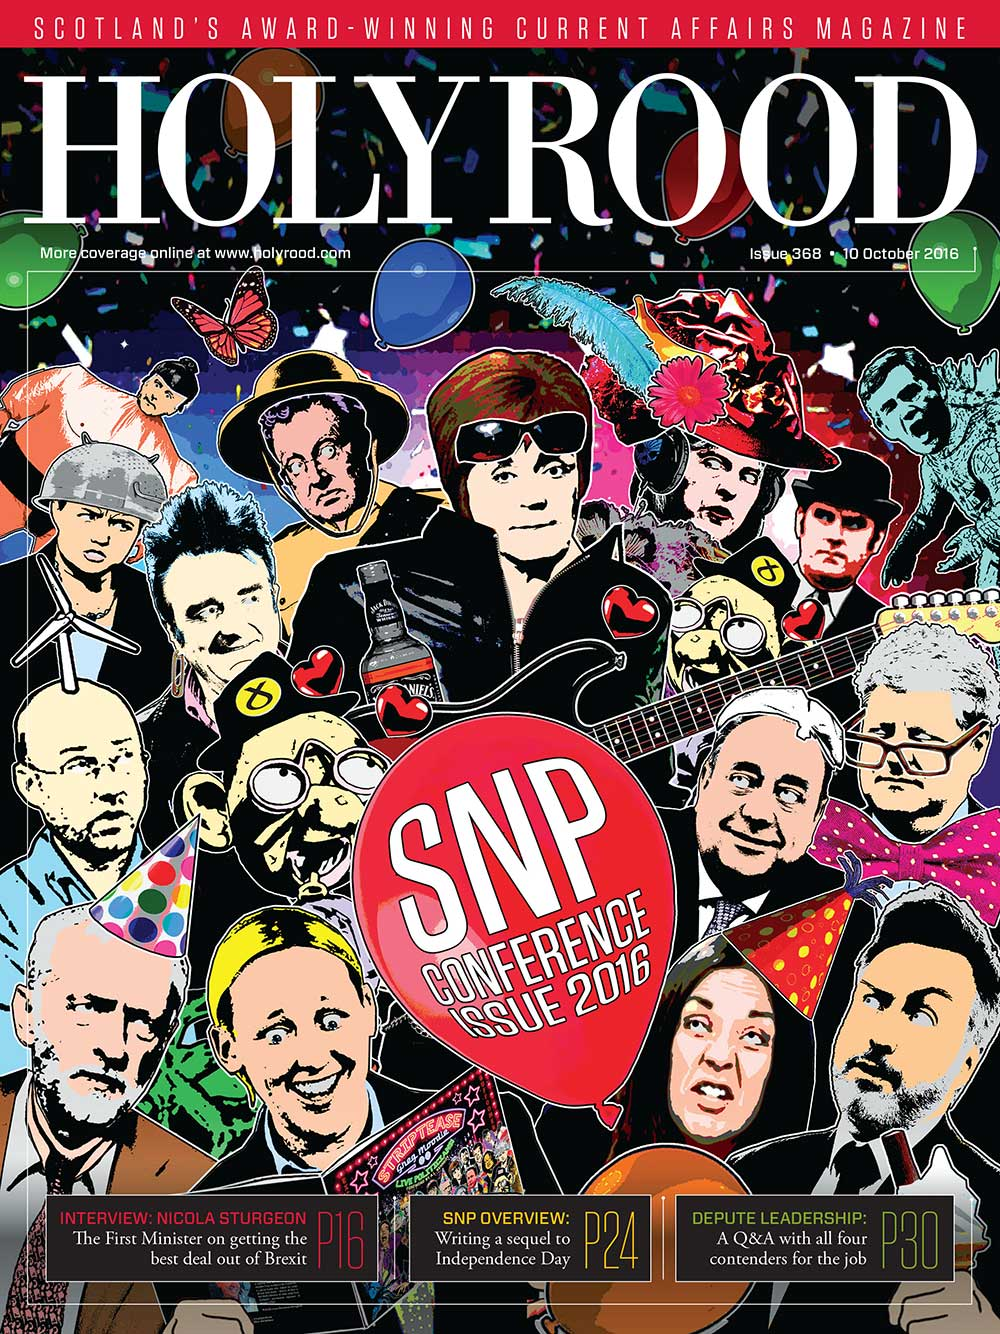 Holyrood magazine cover by Greg Moodie